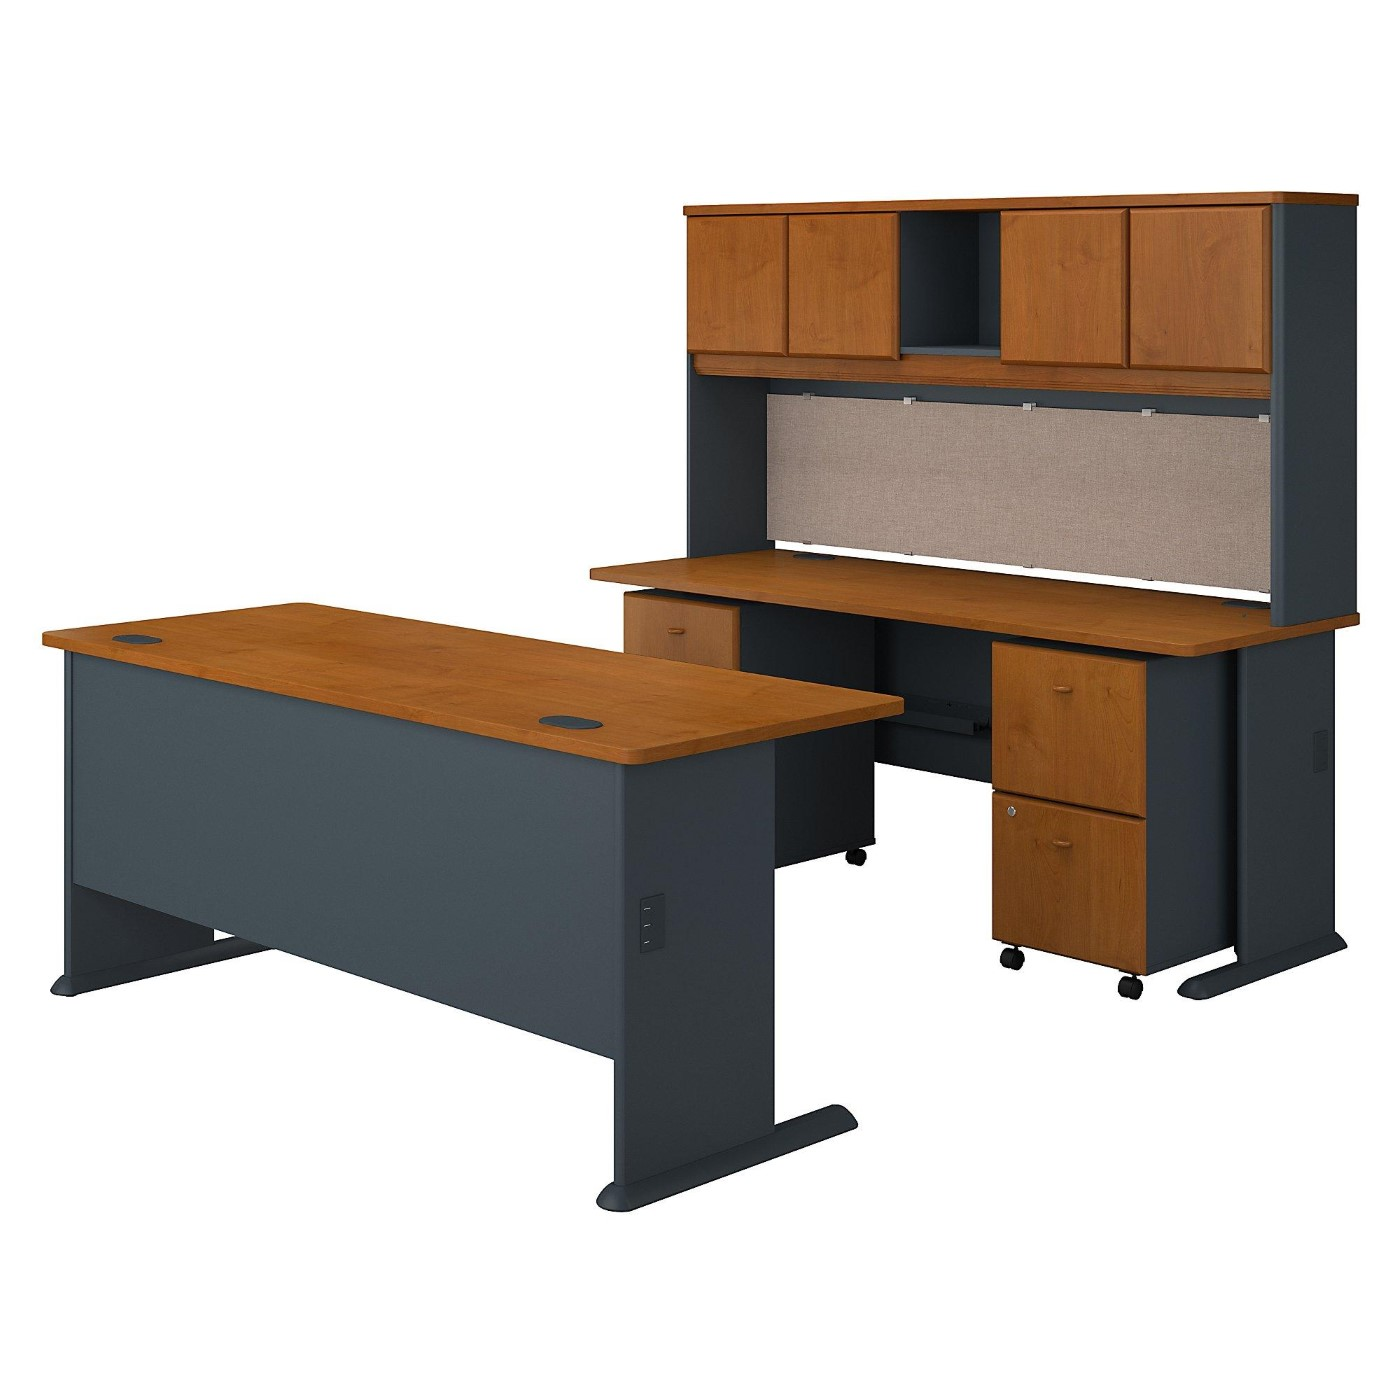 BUSH BUSINESS FURNITURE SERIES A 72W DESKS WITH HUTCH AND MOBILE FILE CABINETS. FREE SHIPPING.  SALE DEDUCT 10% MORE ENTER '10percent' IN COUPON CODE BOX WHILE CHECKING OUT.